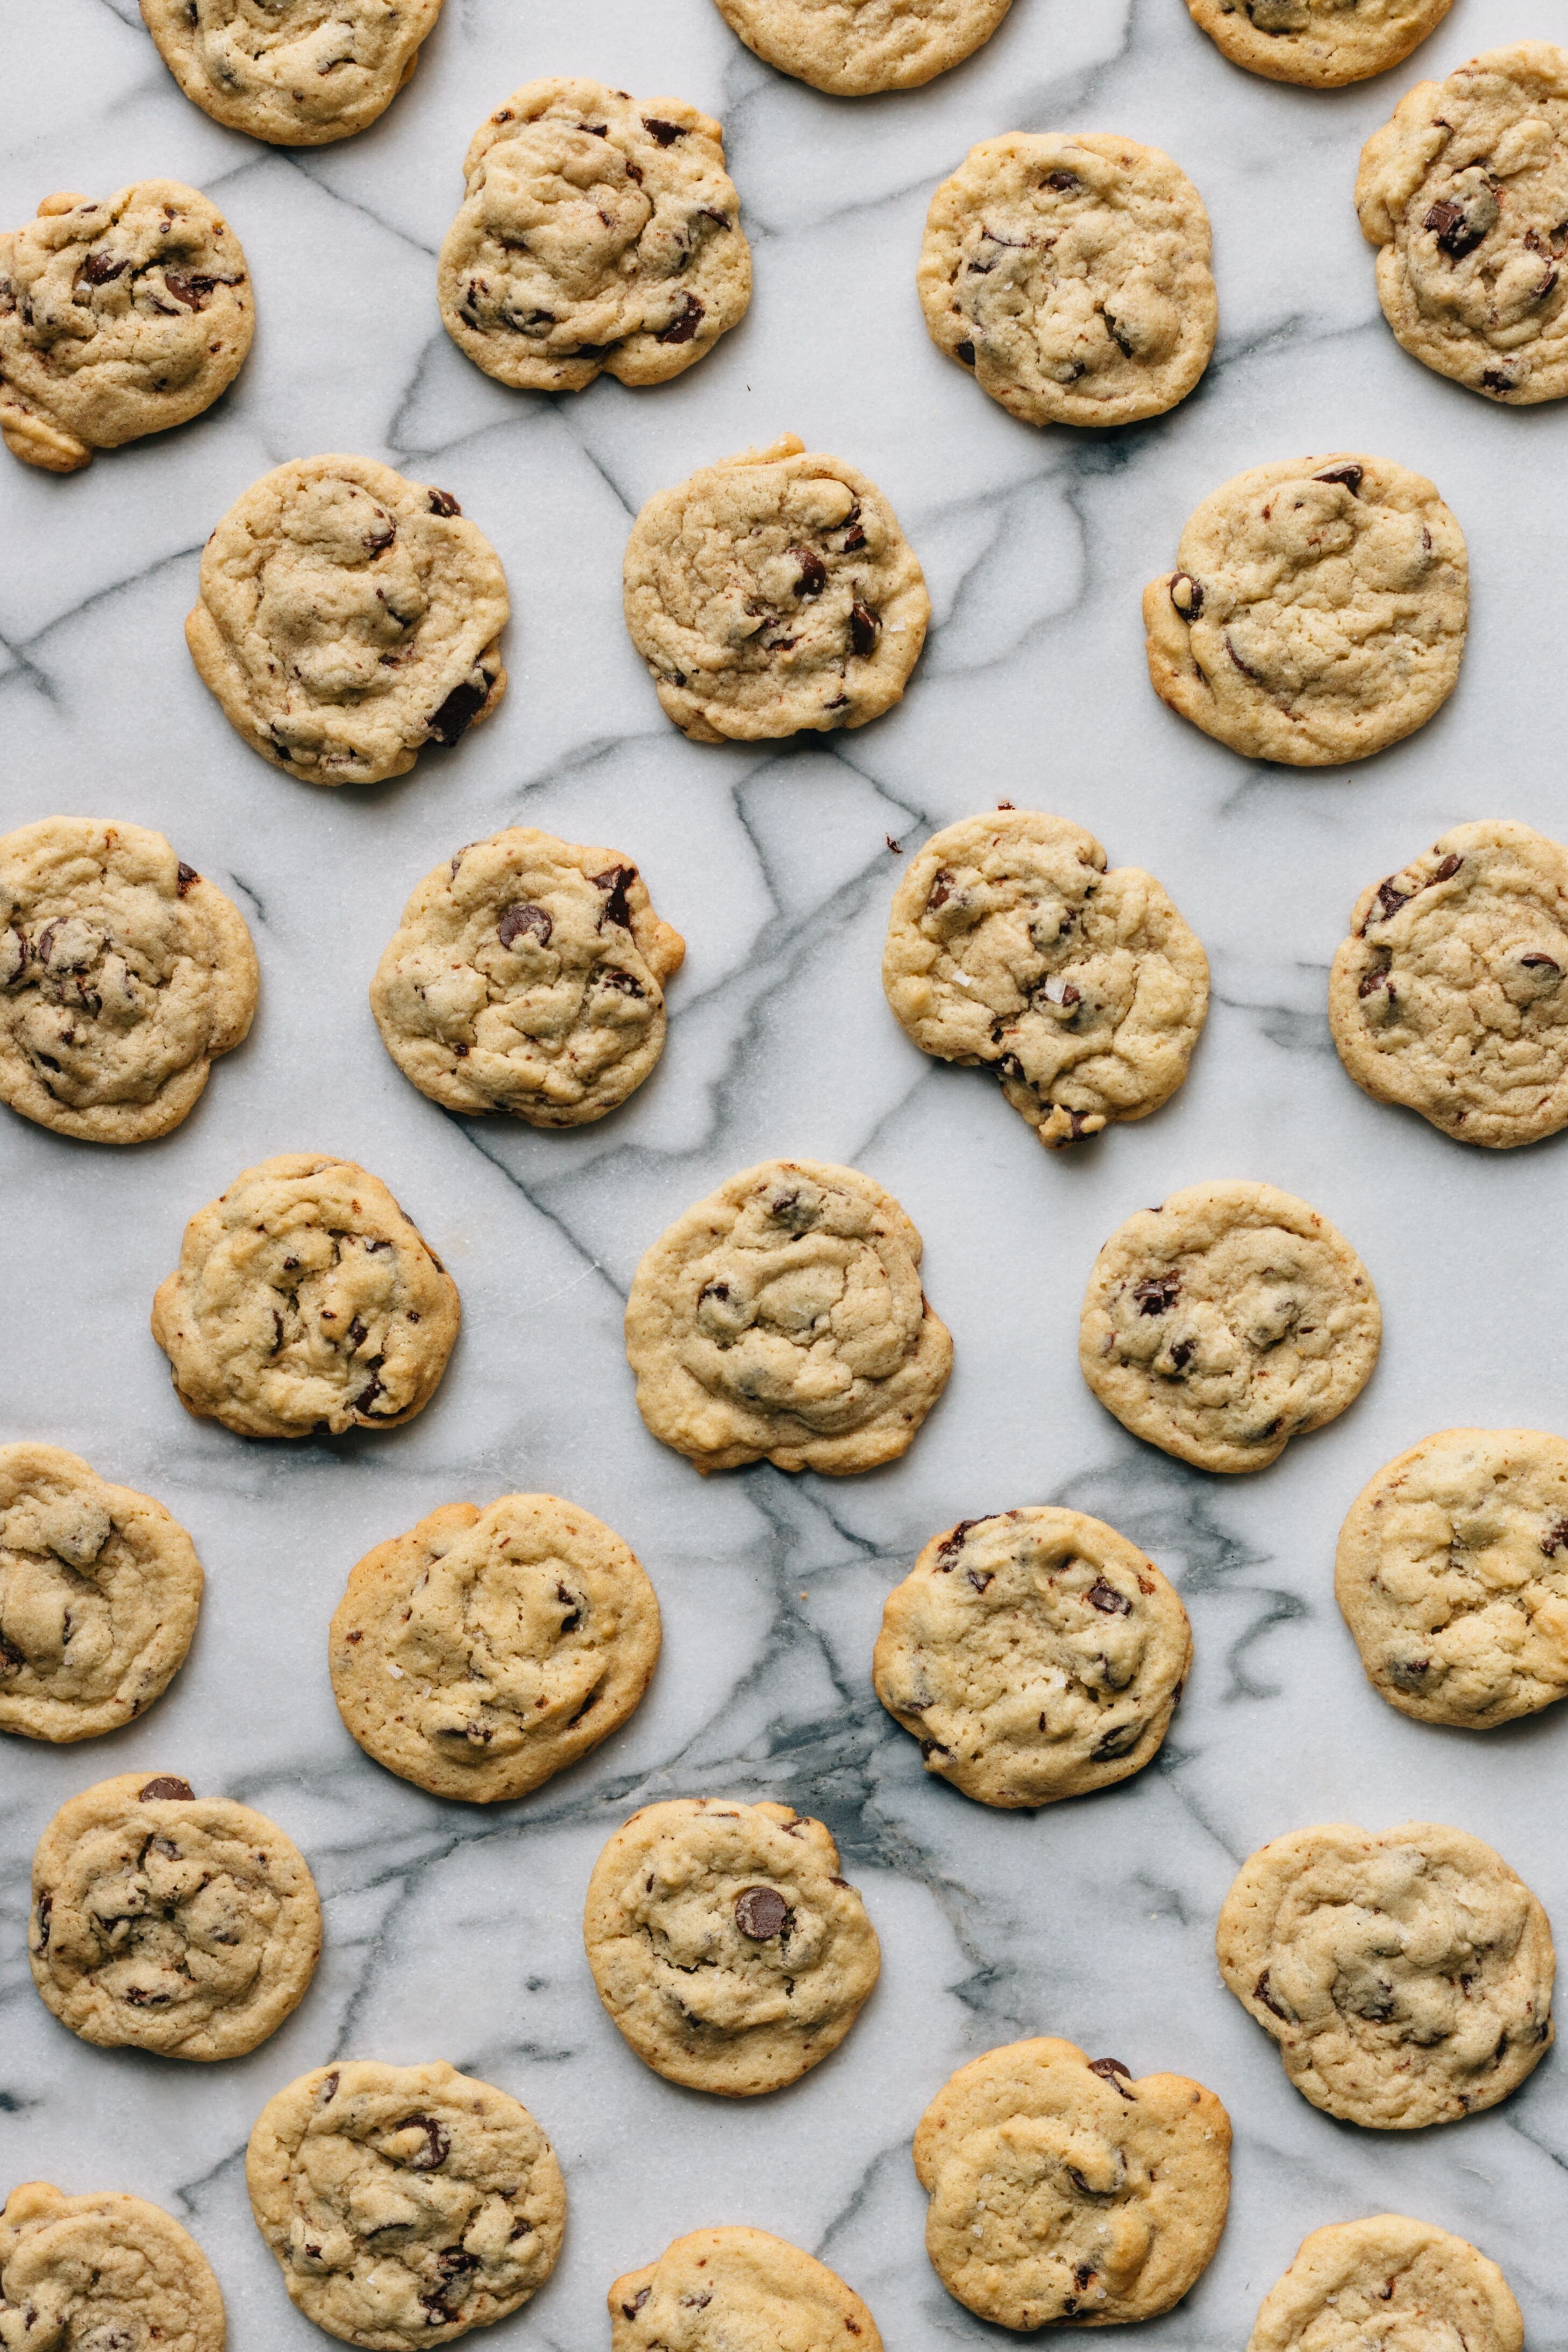 Cookie management policy